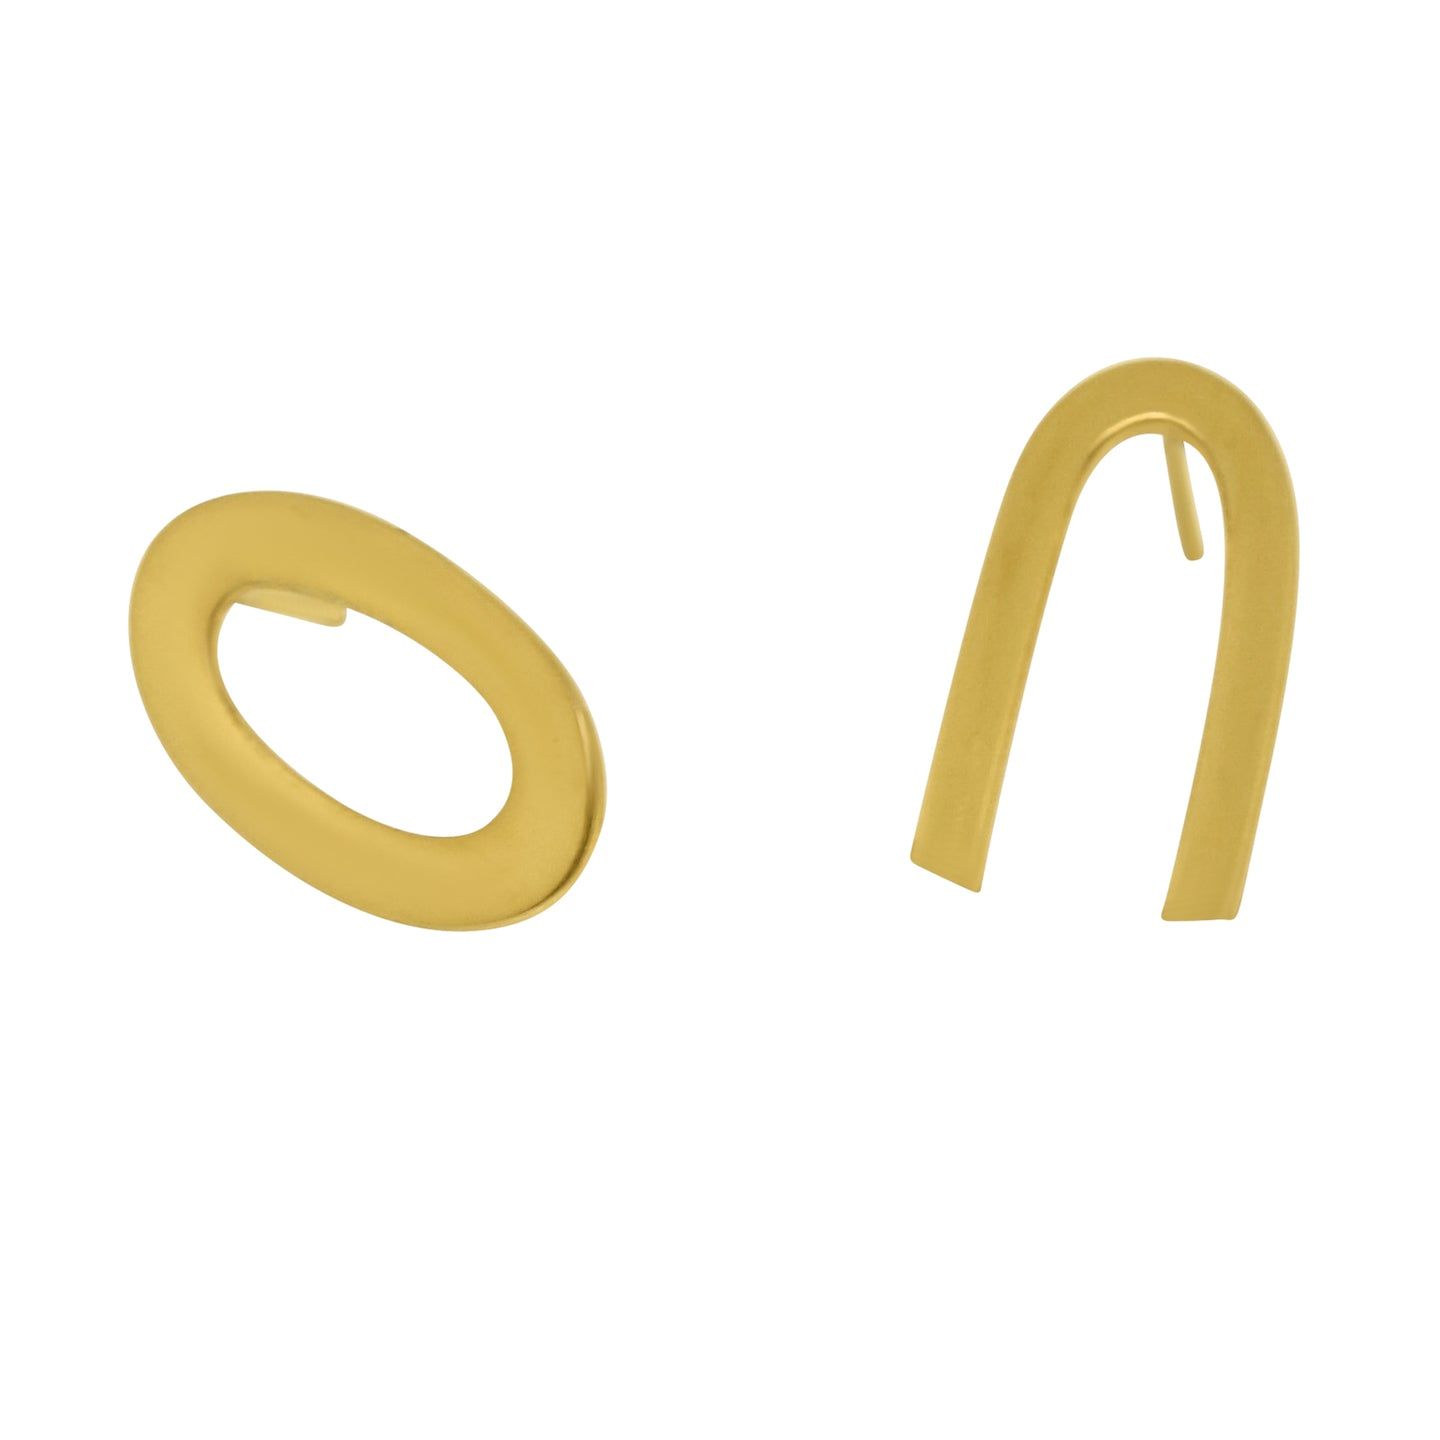 MyJulz - Asymmetrical Gold Earrings (Brass and 18k Gold Plated Assymetrical Earrings)